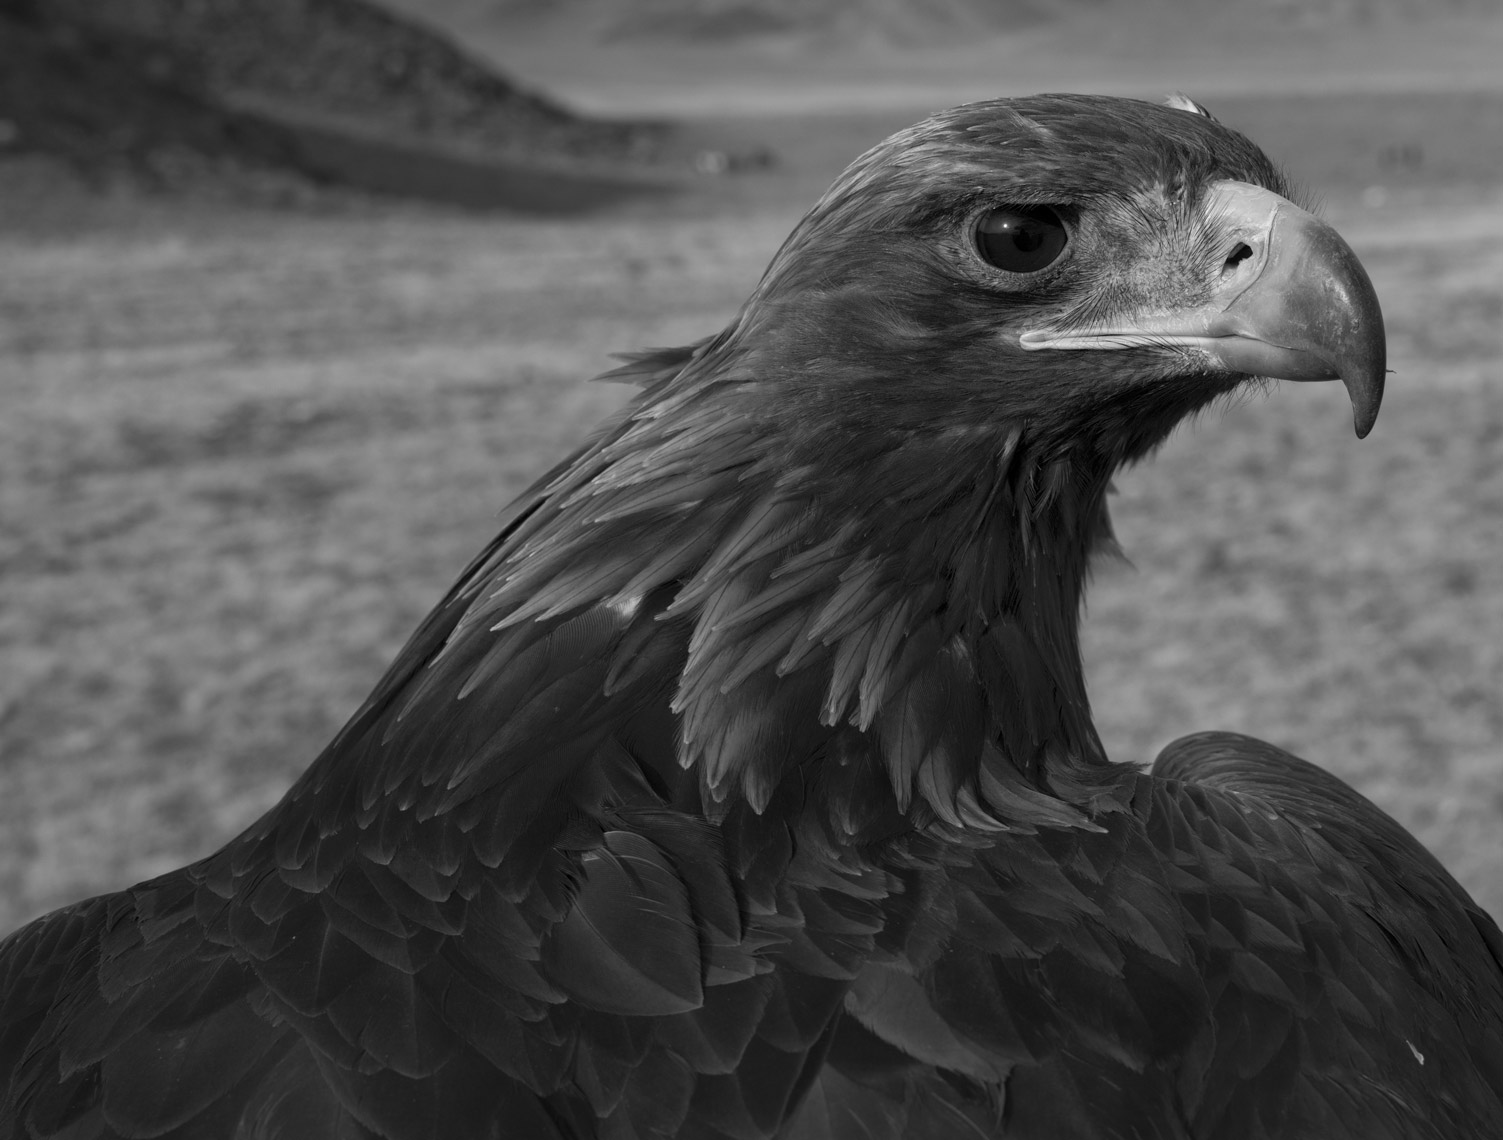 Hunting-with-Eagles-Final-Edit-TIFF77